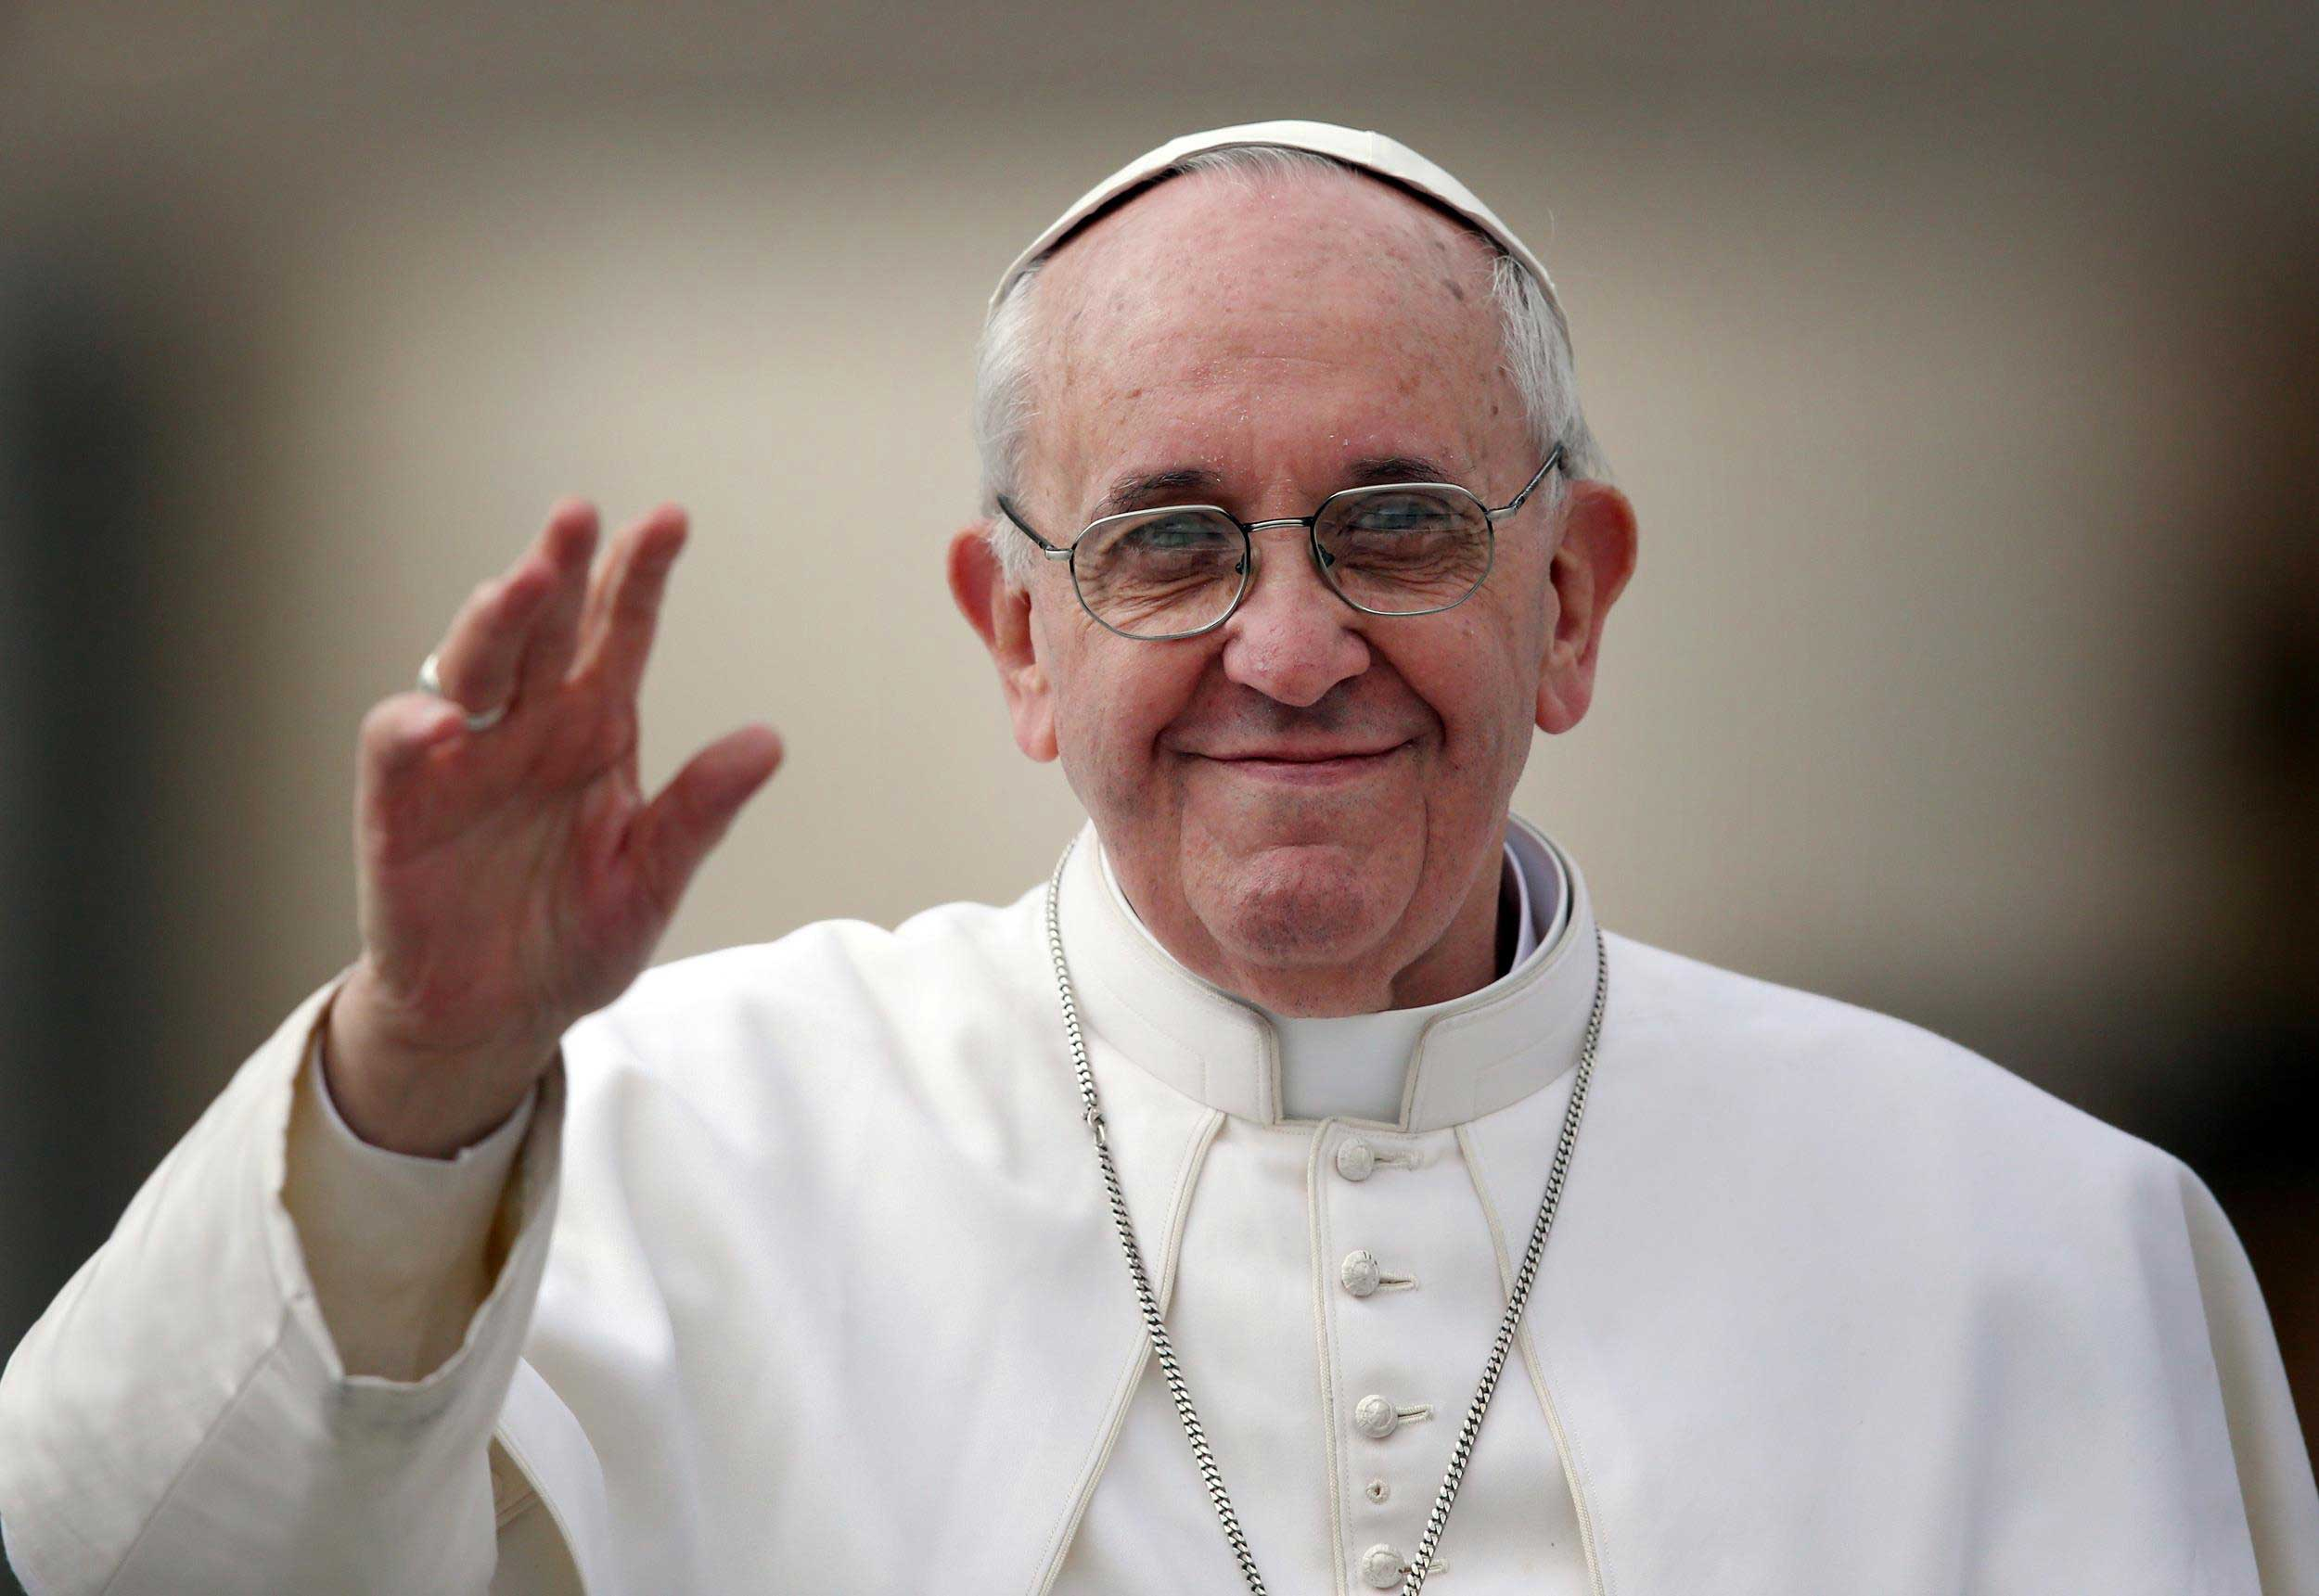 I'm a little old and a little sick: Pope Francis to the elderly